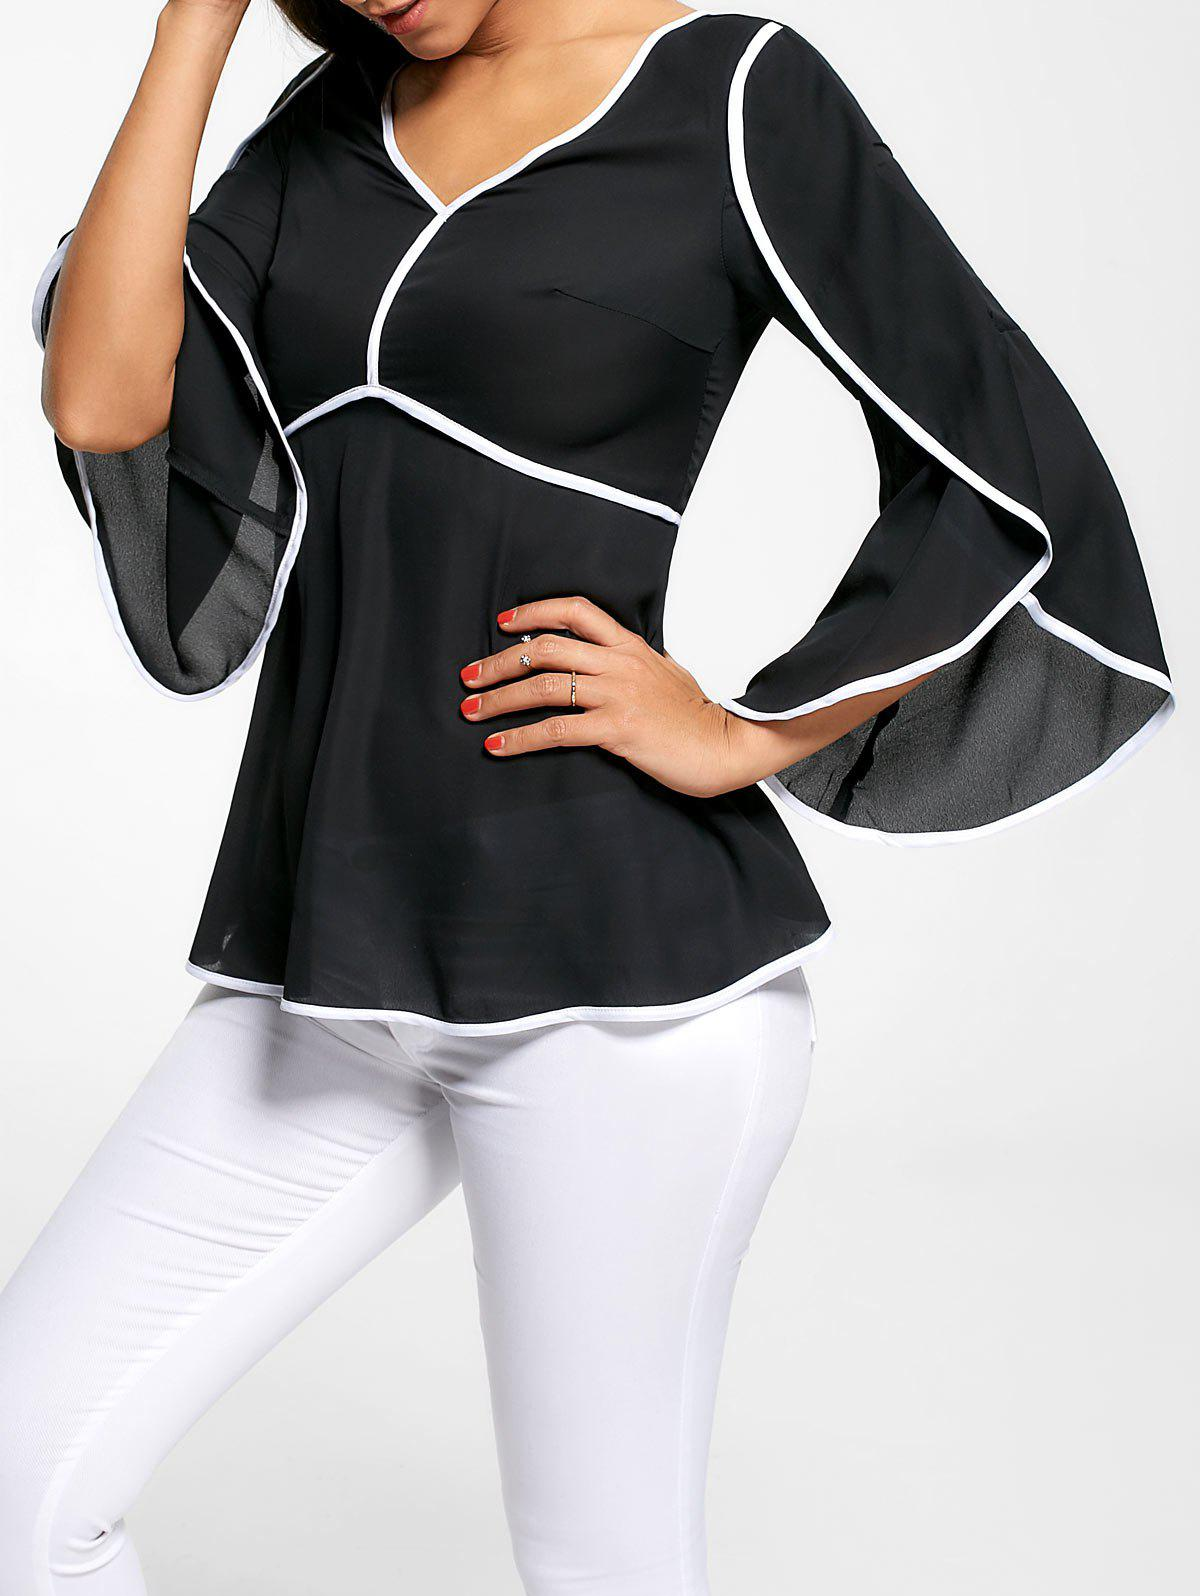 V Neck Contrast Pinping Chiffon TopWOMEN<br><br>Size: L; Color: BLACK; Style: Fashion; Material: Polyester; Shirt Length: Regular; Sleeve Length: Three Quarter; Collar: V-Neck; Pattern Type: Solid; Season: Fall,Spring,Summer; Weight: 0.2700kg; Package Contents: 1 x Top;